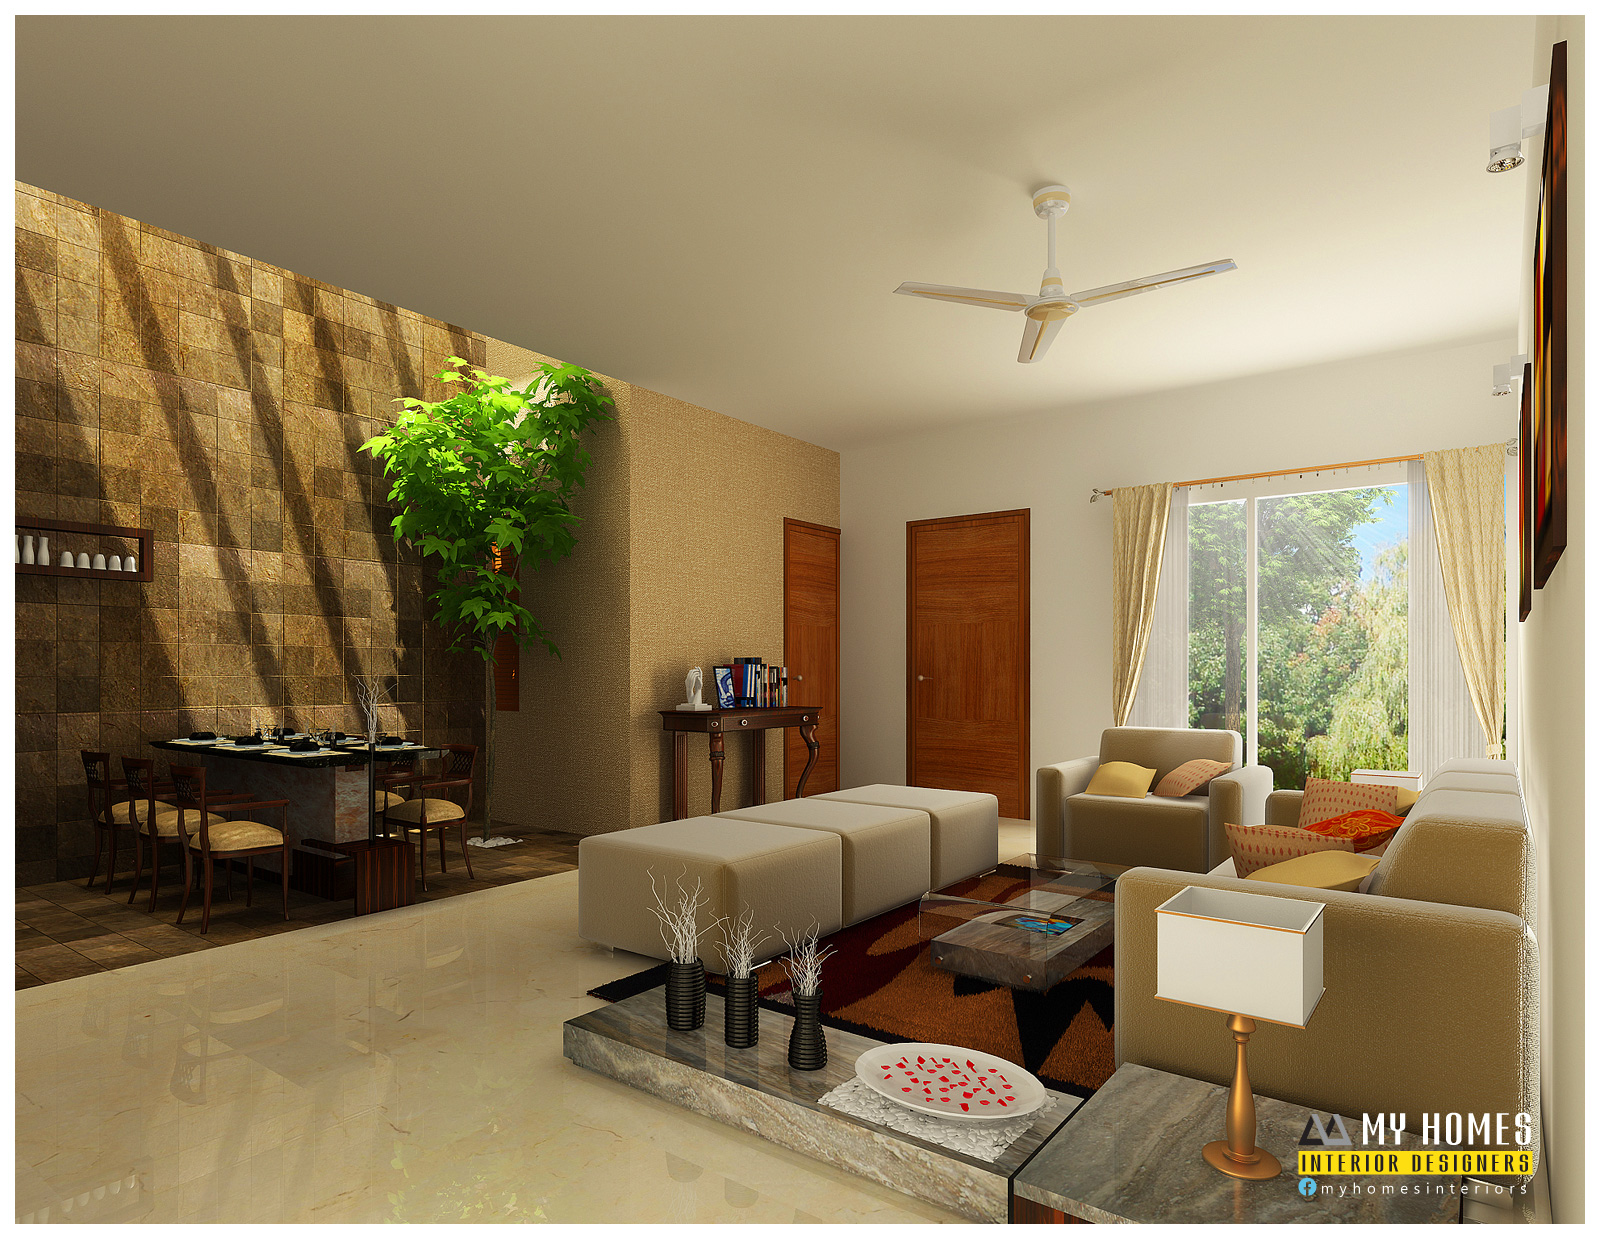 Kerala interior design ideas from designing company thrissur for House designs interior photos